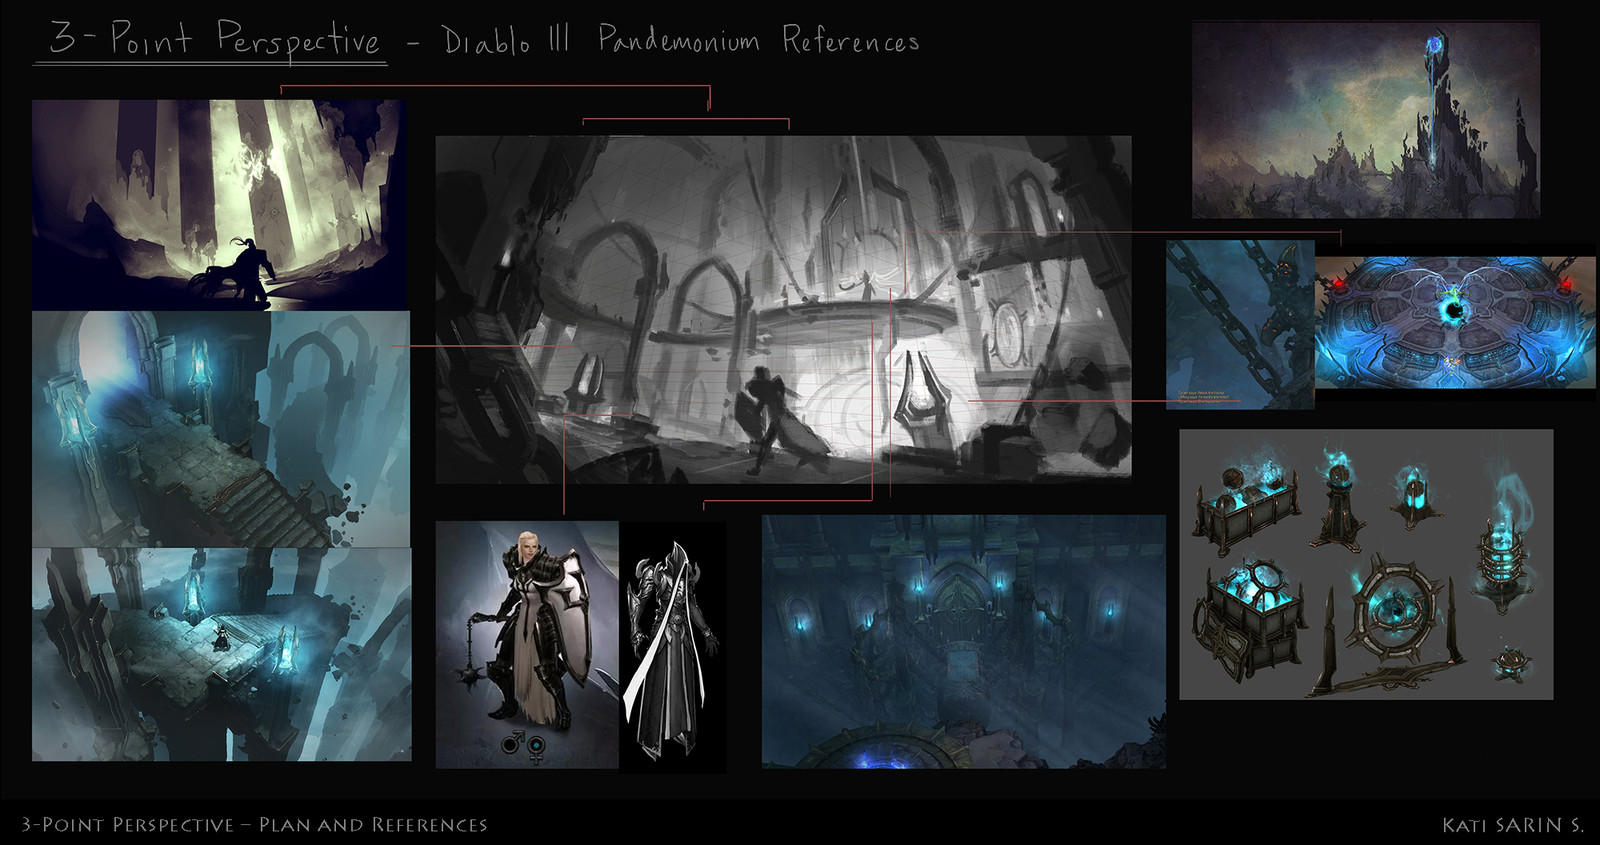 Research and composition planning with volumetric painting. References used: Character and concept © copyright Blizzard Entertainment